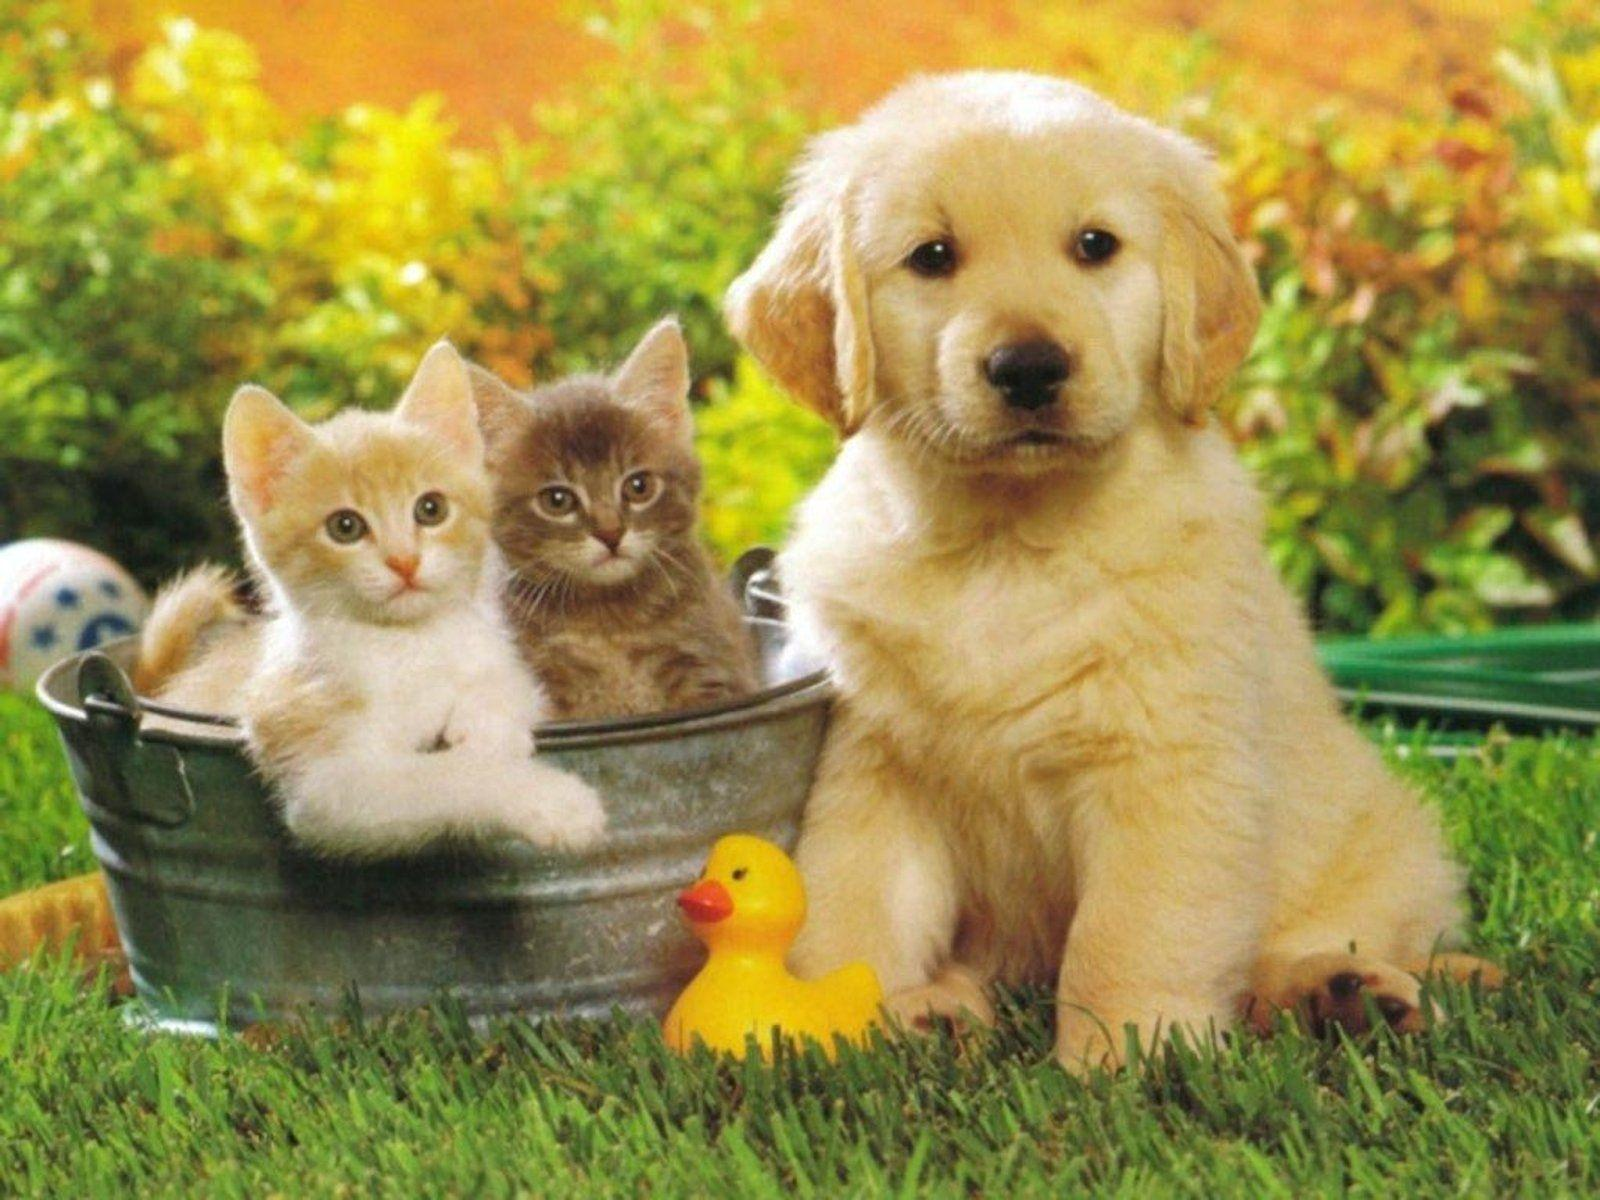 Golden Retriever puppy and kittens photo and wallpaper. Beautiful